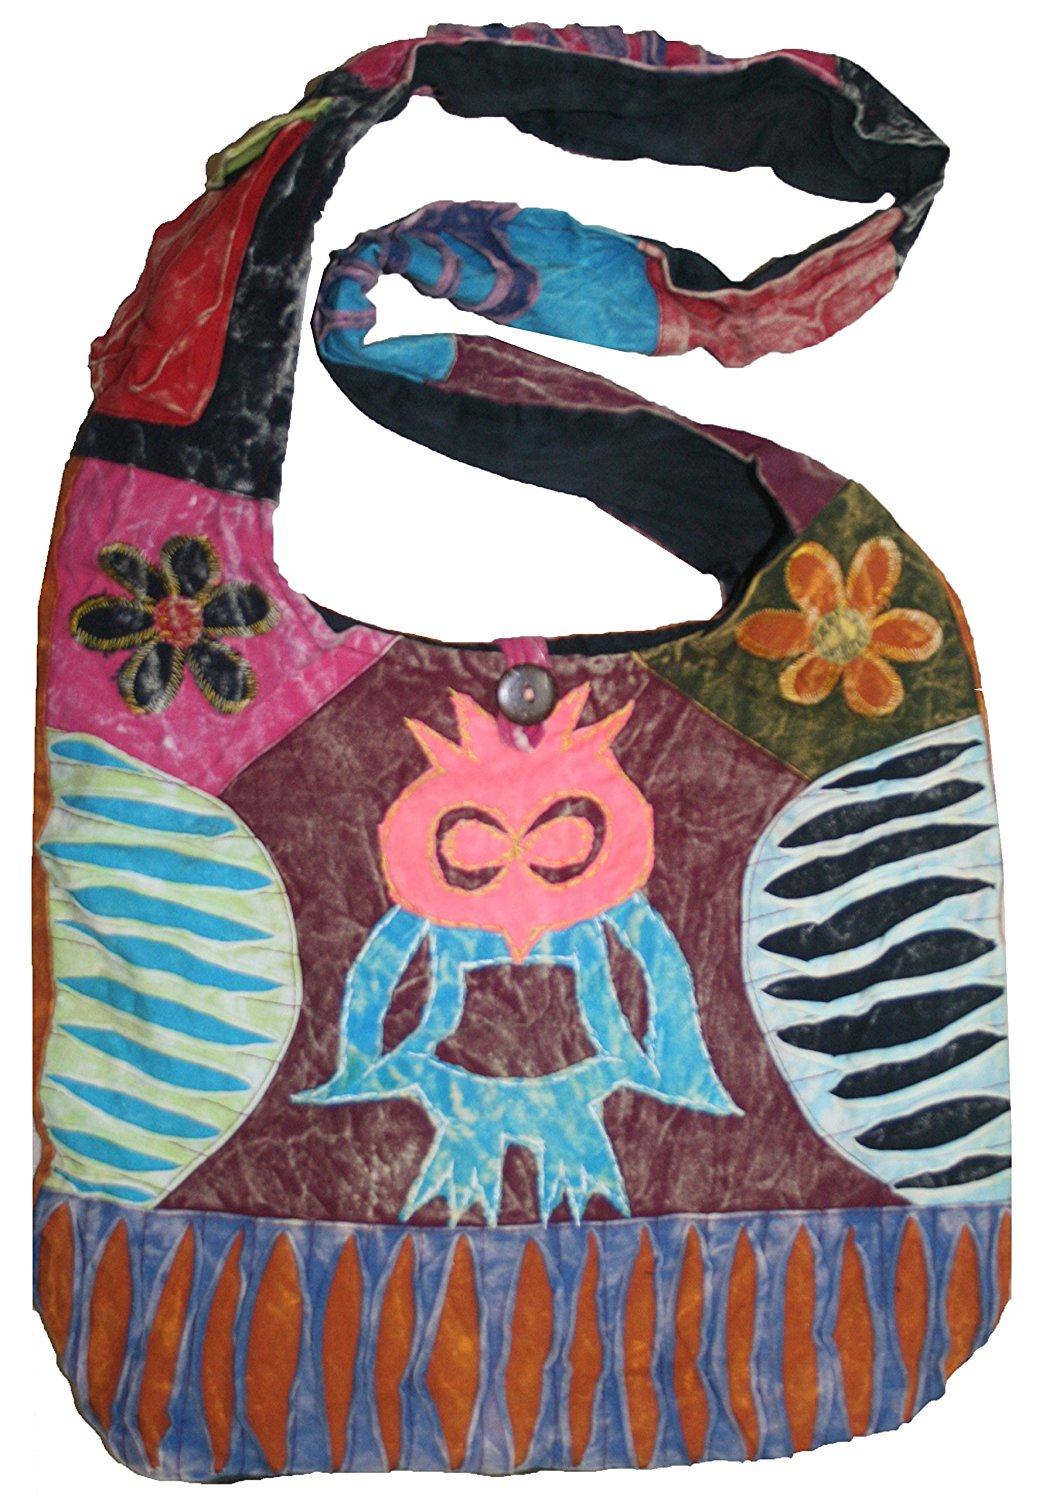 JSA 02 Owl Patch Cotton Boho Cross Shoulder Bag Purse - Agan Traders, Multi 6